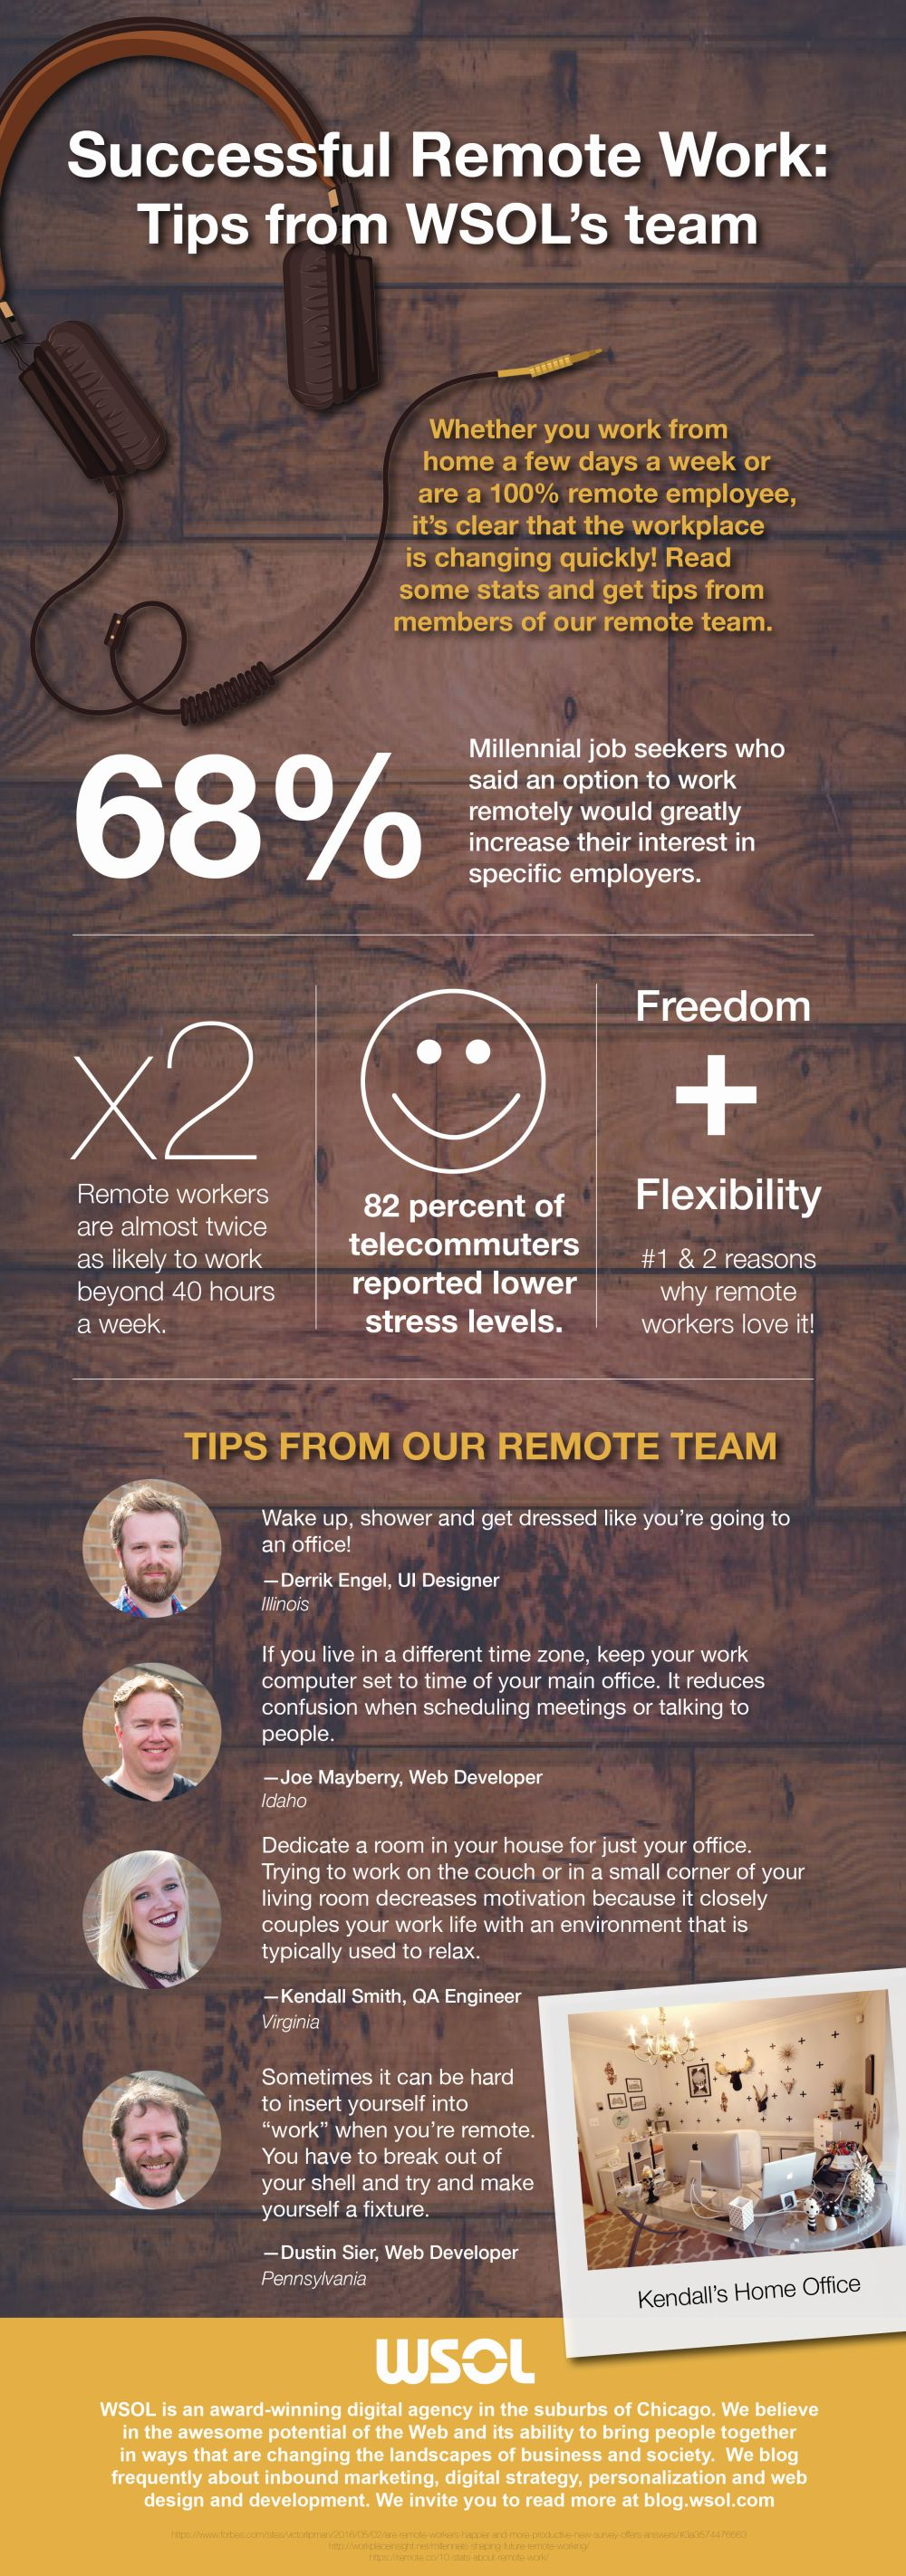 Tips For Remote Work Infographic.jpg